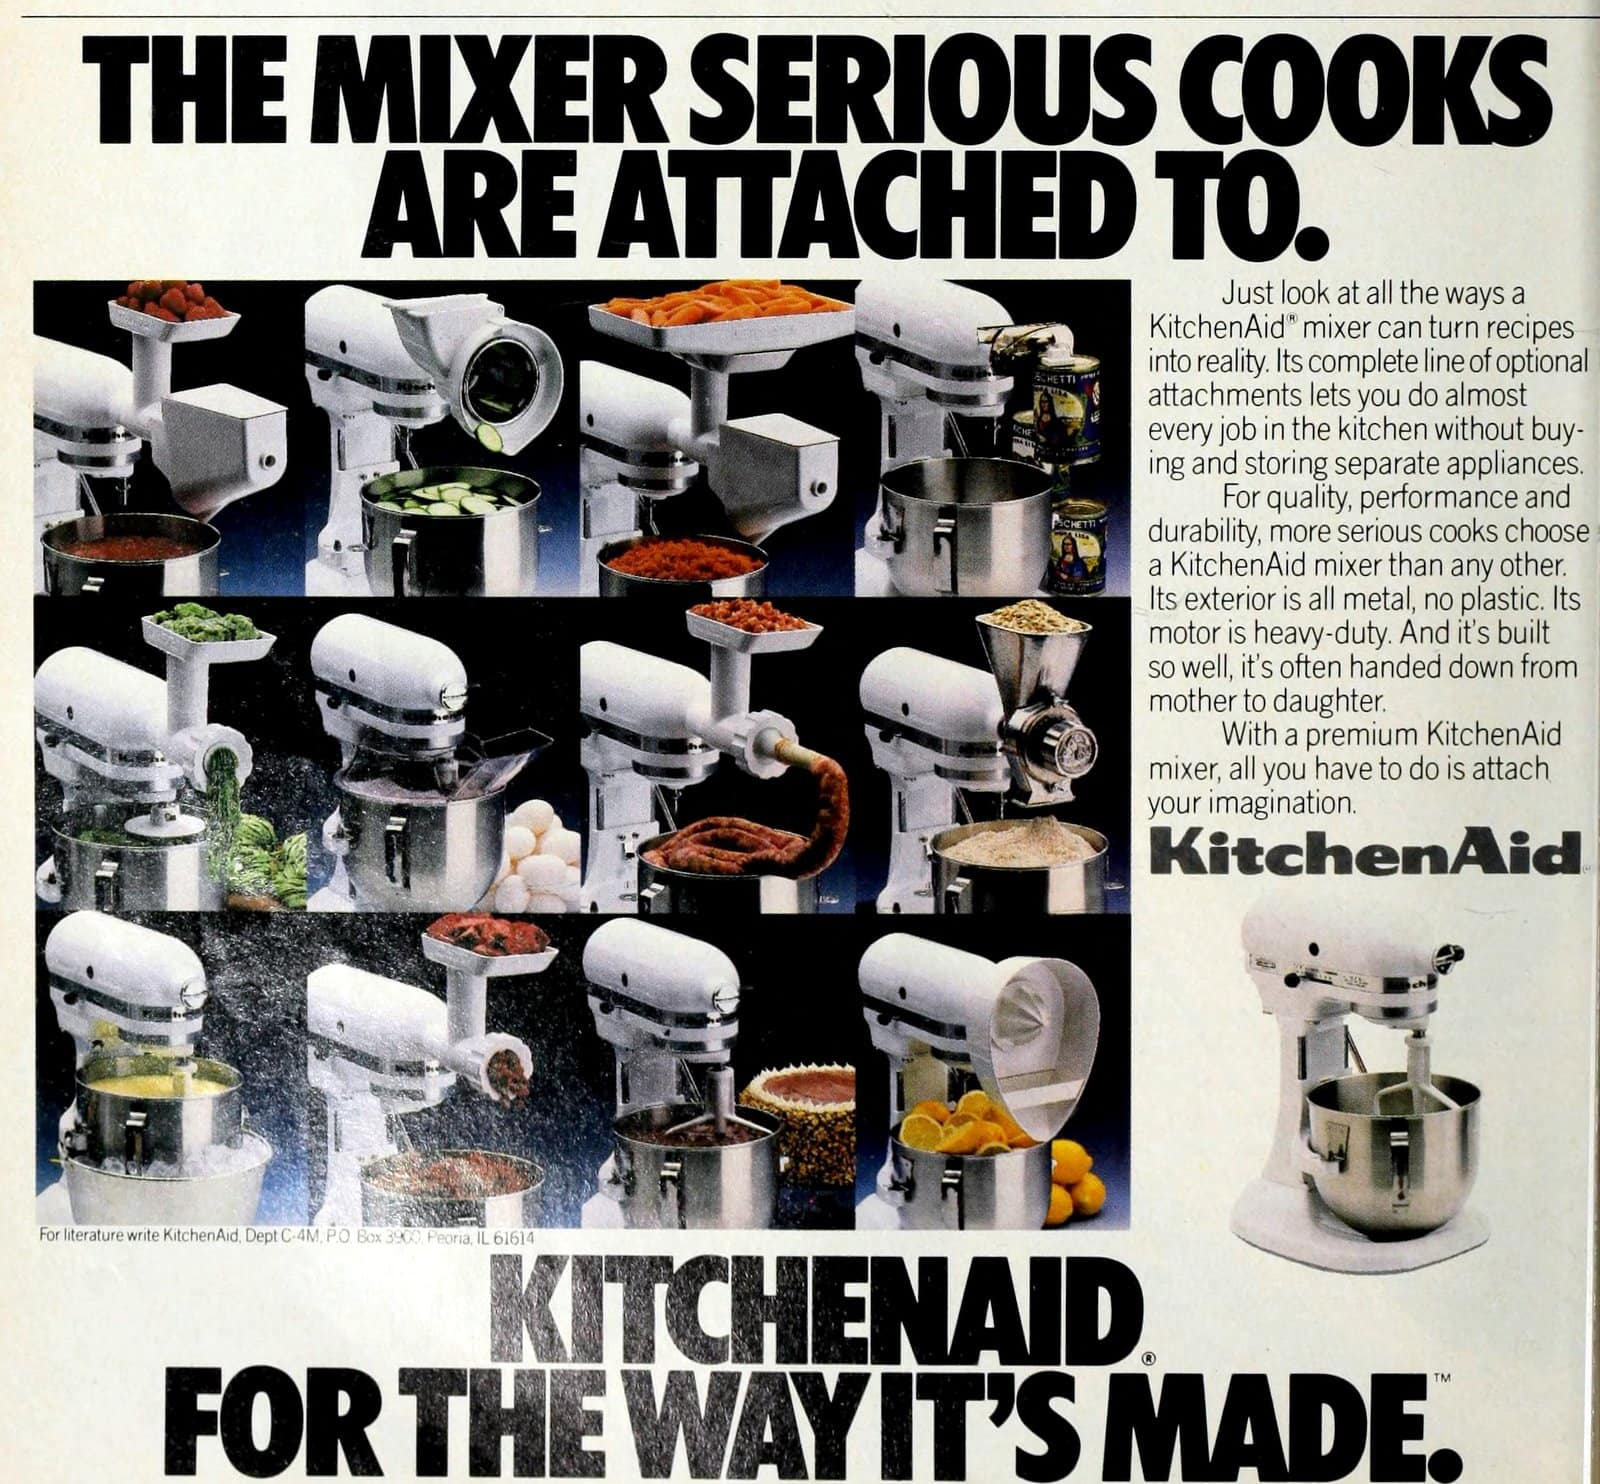 Vintage Kitchen Aid stand mixer with different attachments (1986)